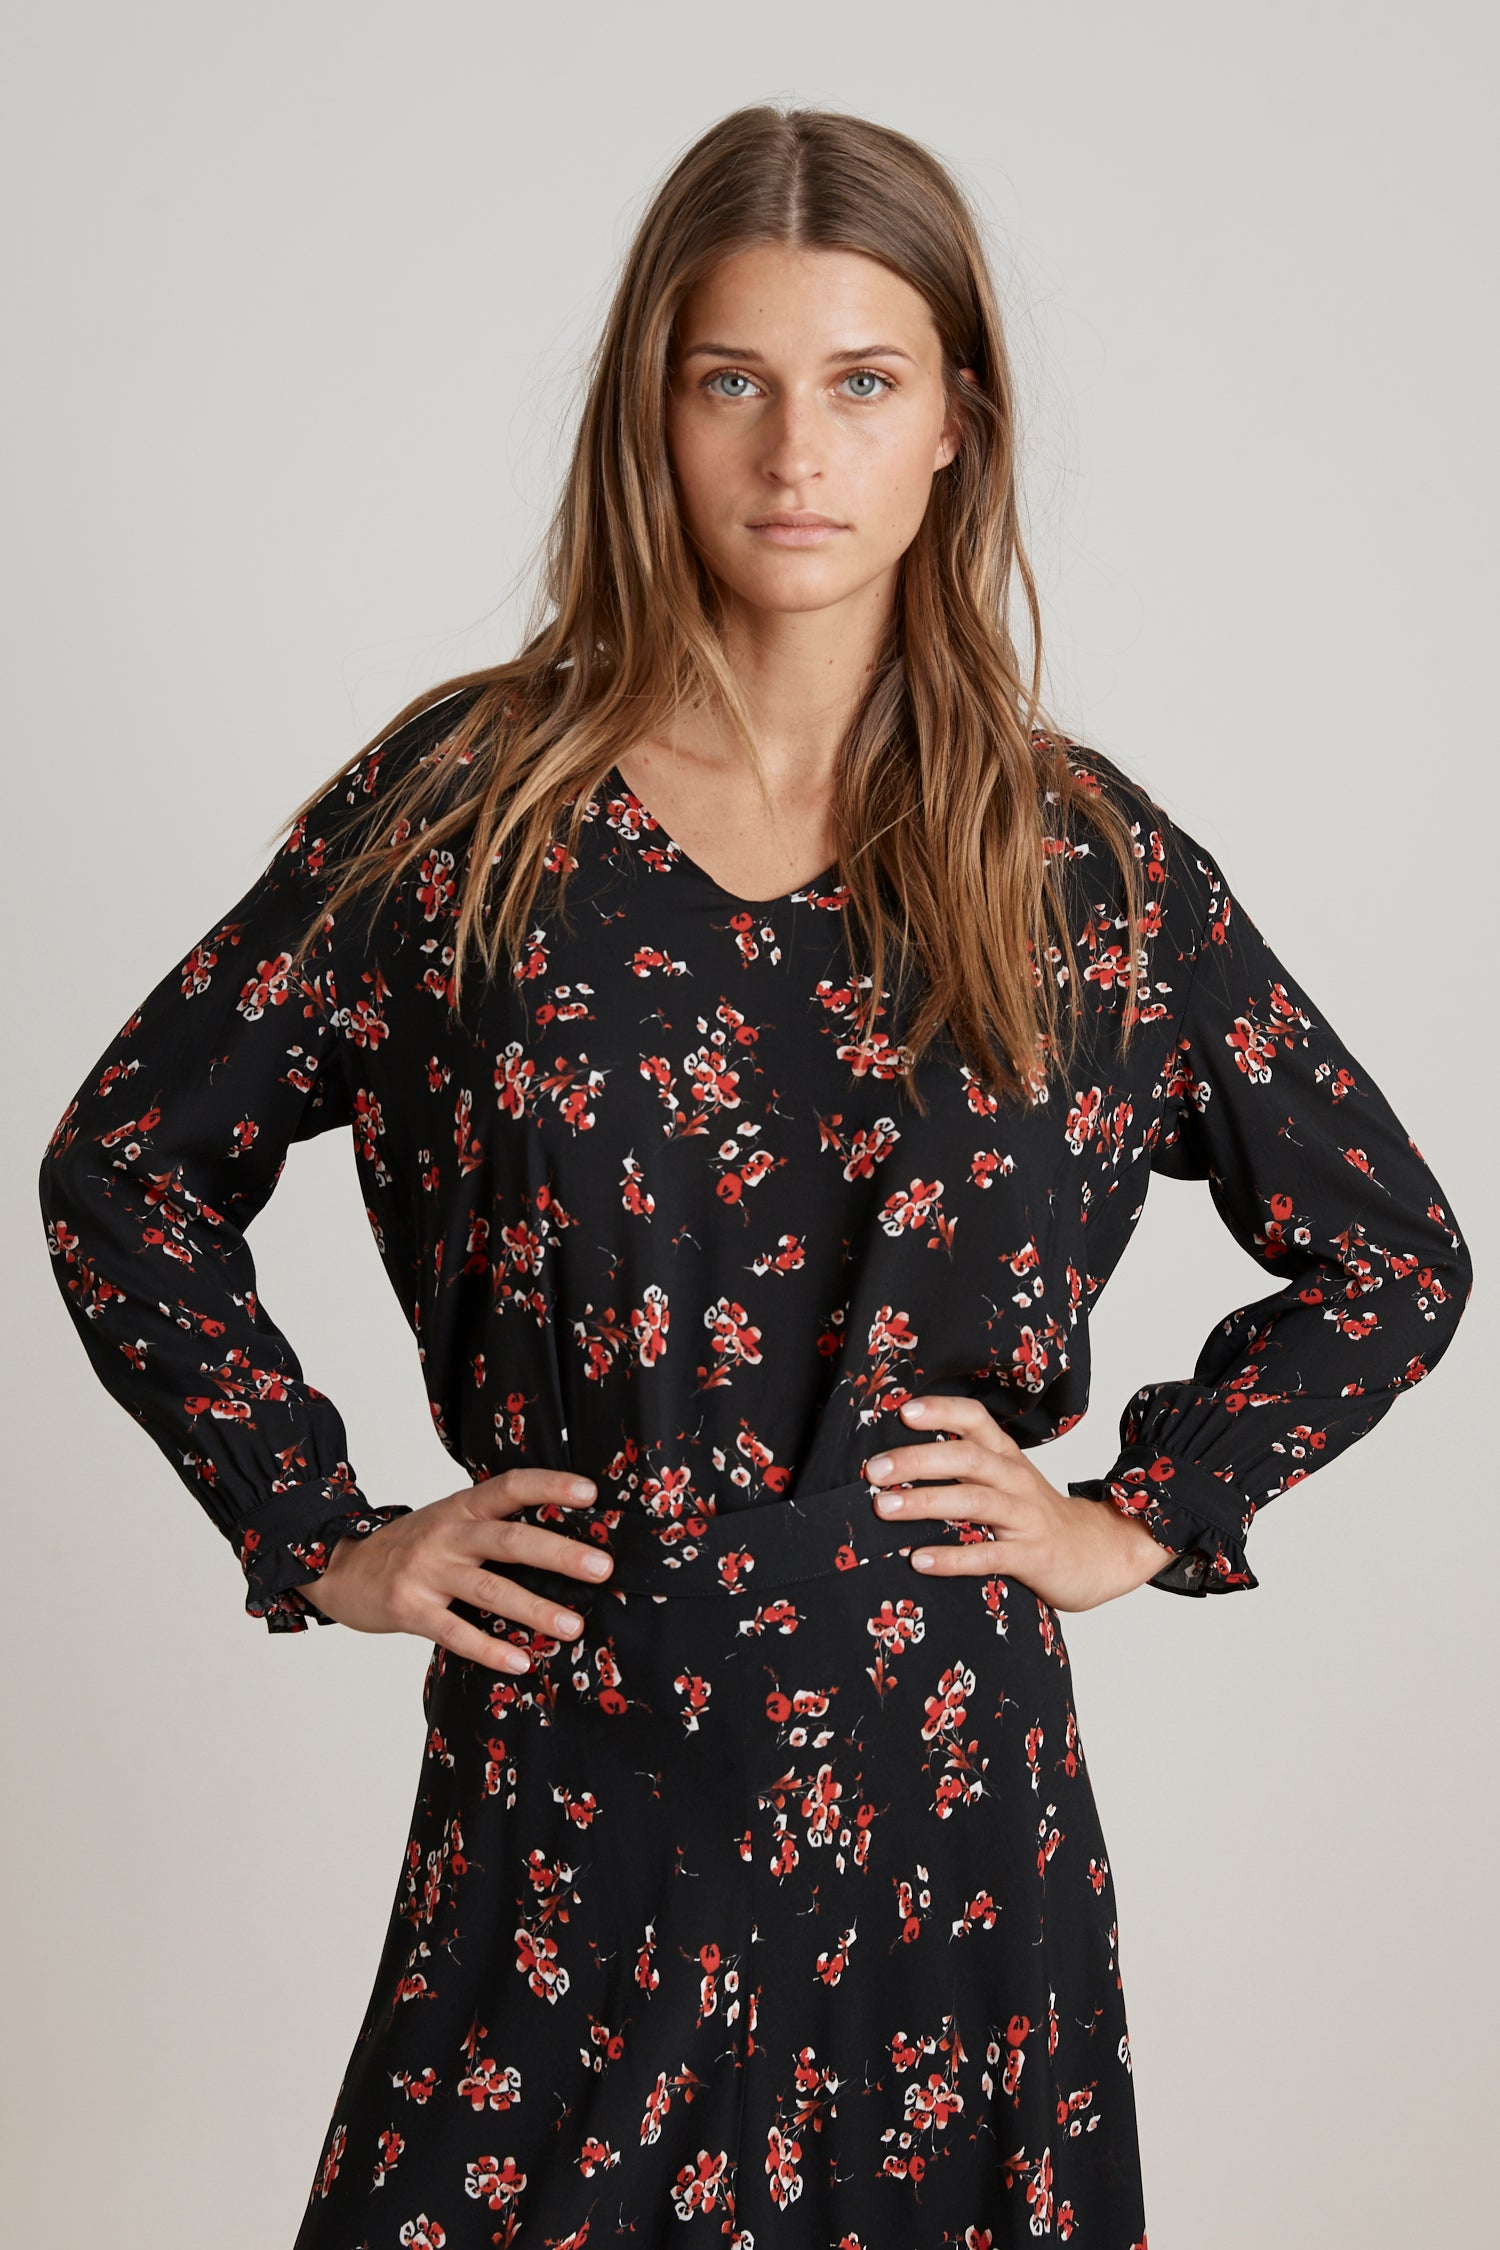 JAZZY FLORAL PRINTED CHALLIS BLOUSE IN CHERRY BLOSSOM